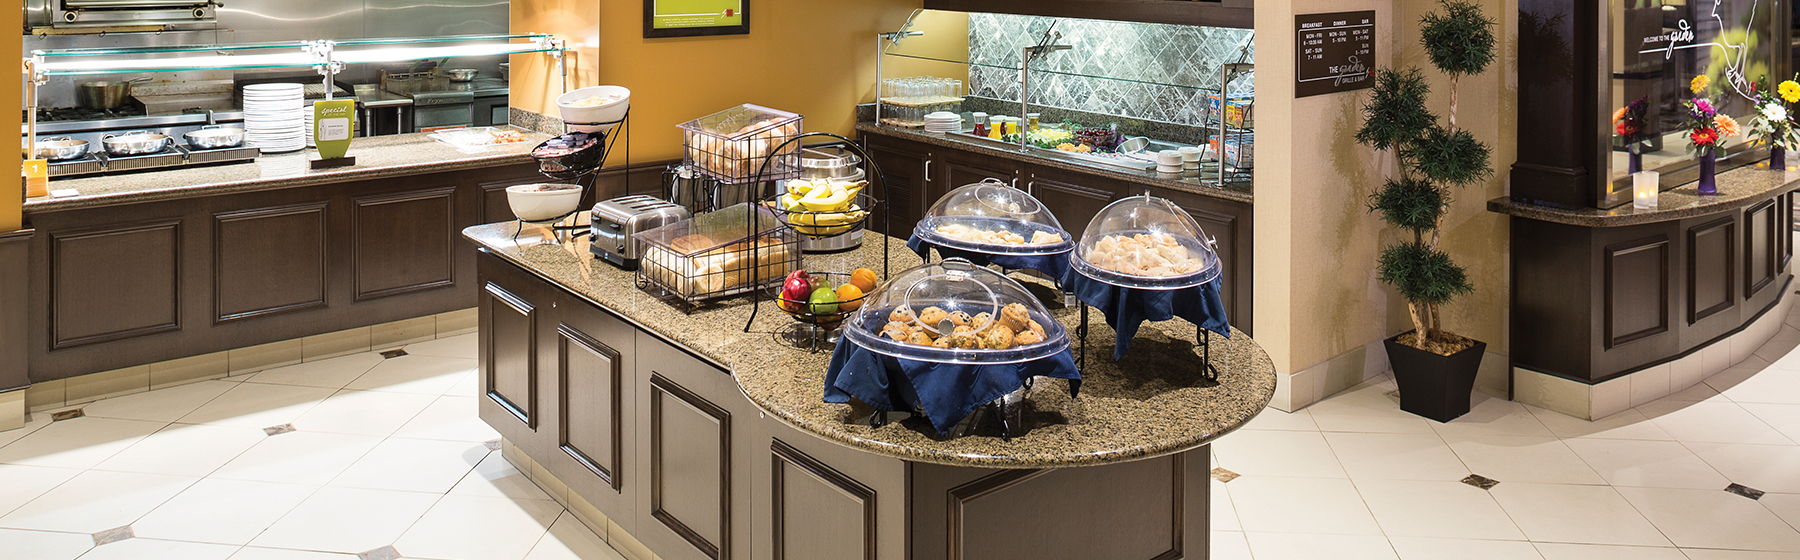 Hilton Garden Inn - South Sioux Falls